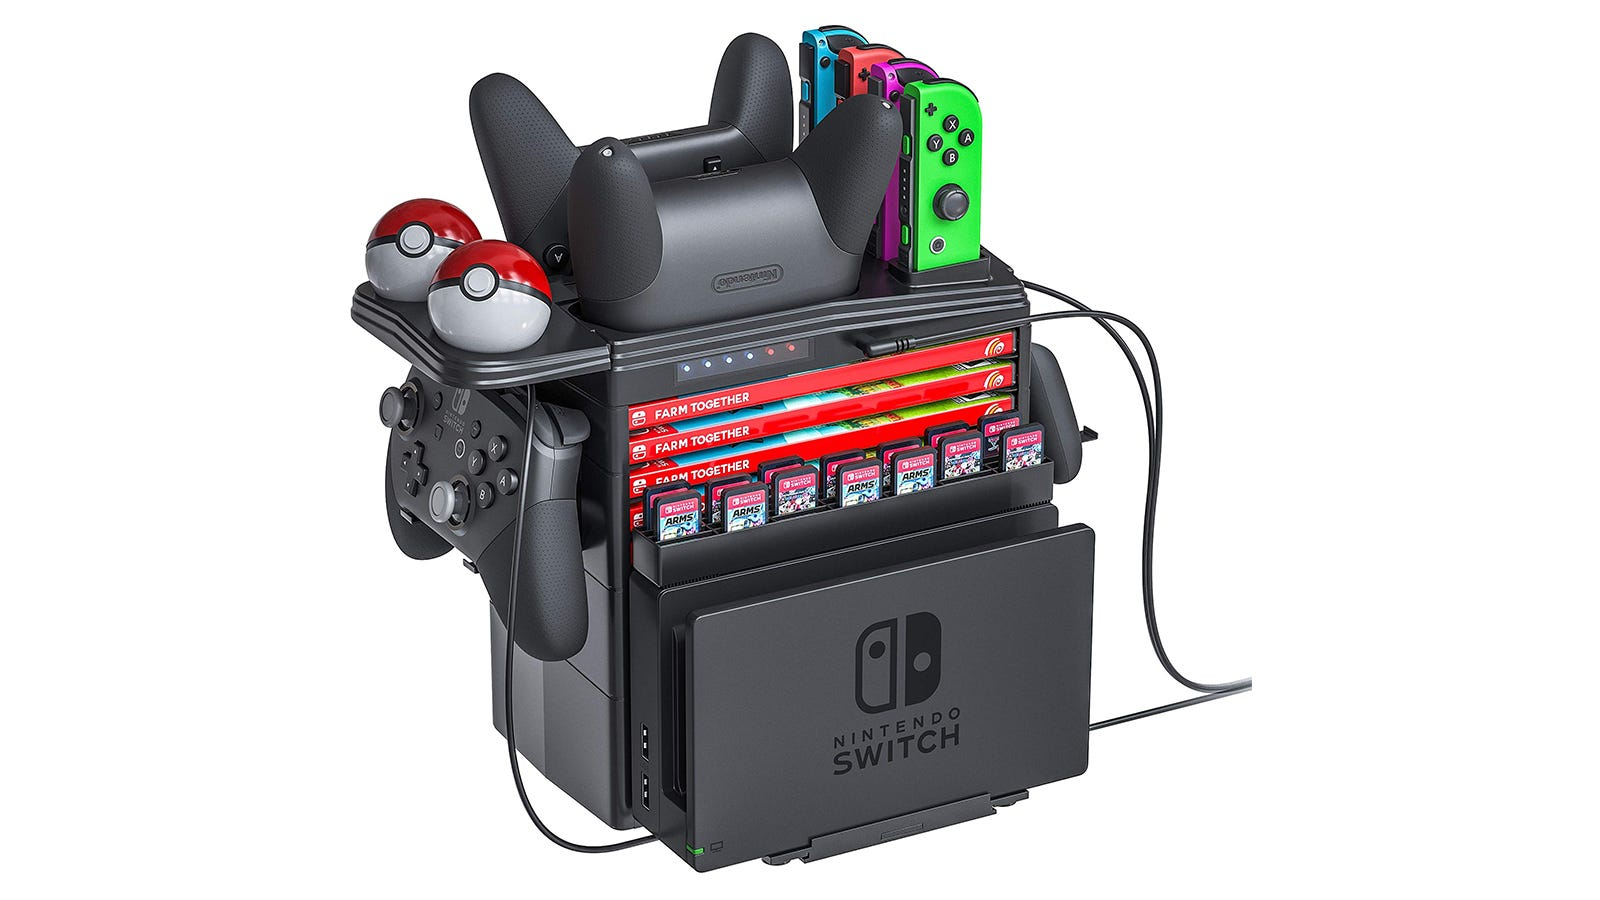 The Skywin Charging Tower for Nintendo Switch.